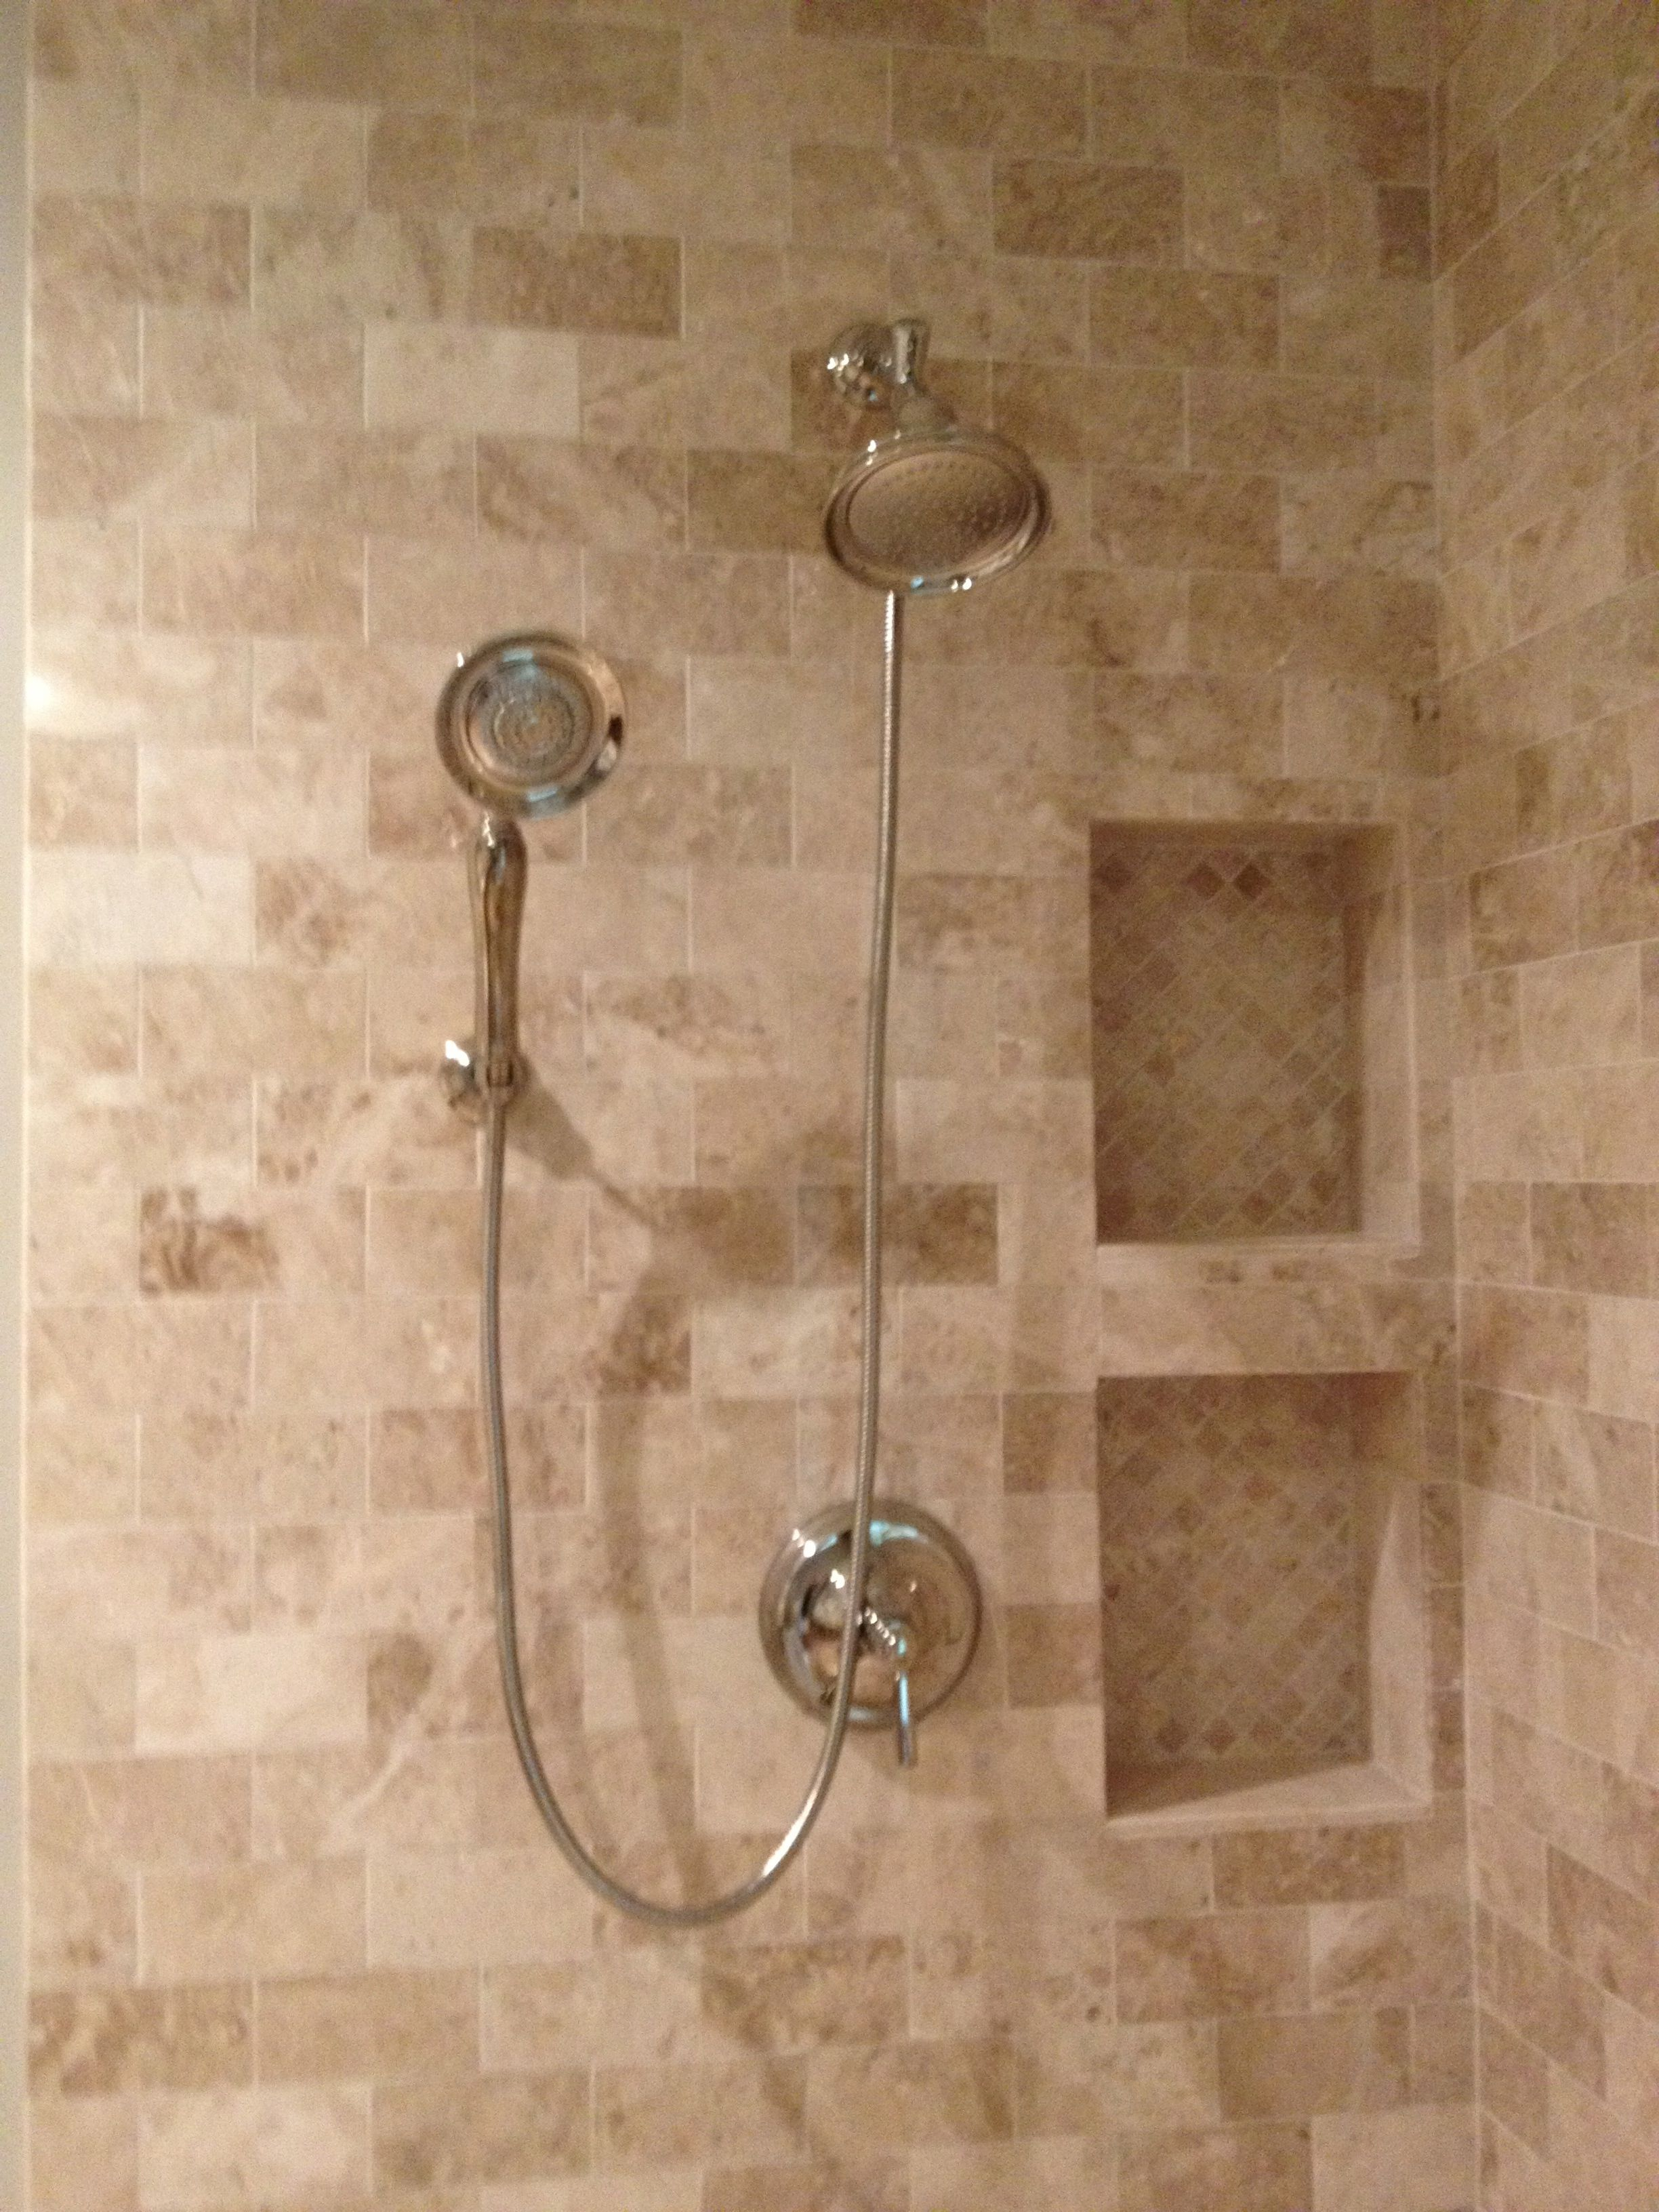 room design ideas to on cool tile bathroom travertine unique renovation a home